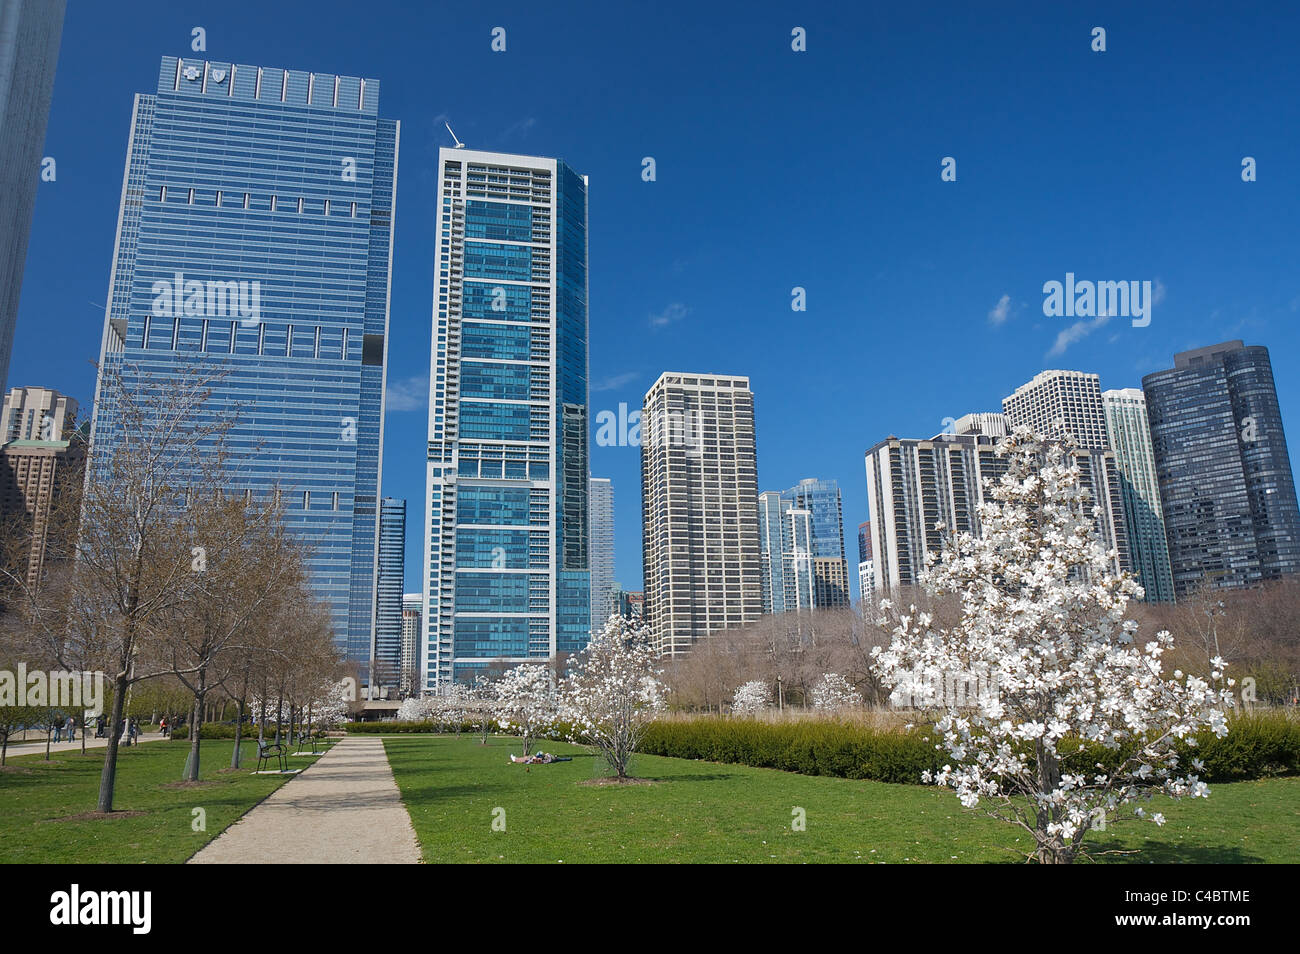 Daley Bicentennial Plaza in Chicago's Grant Park Stock Photo